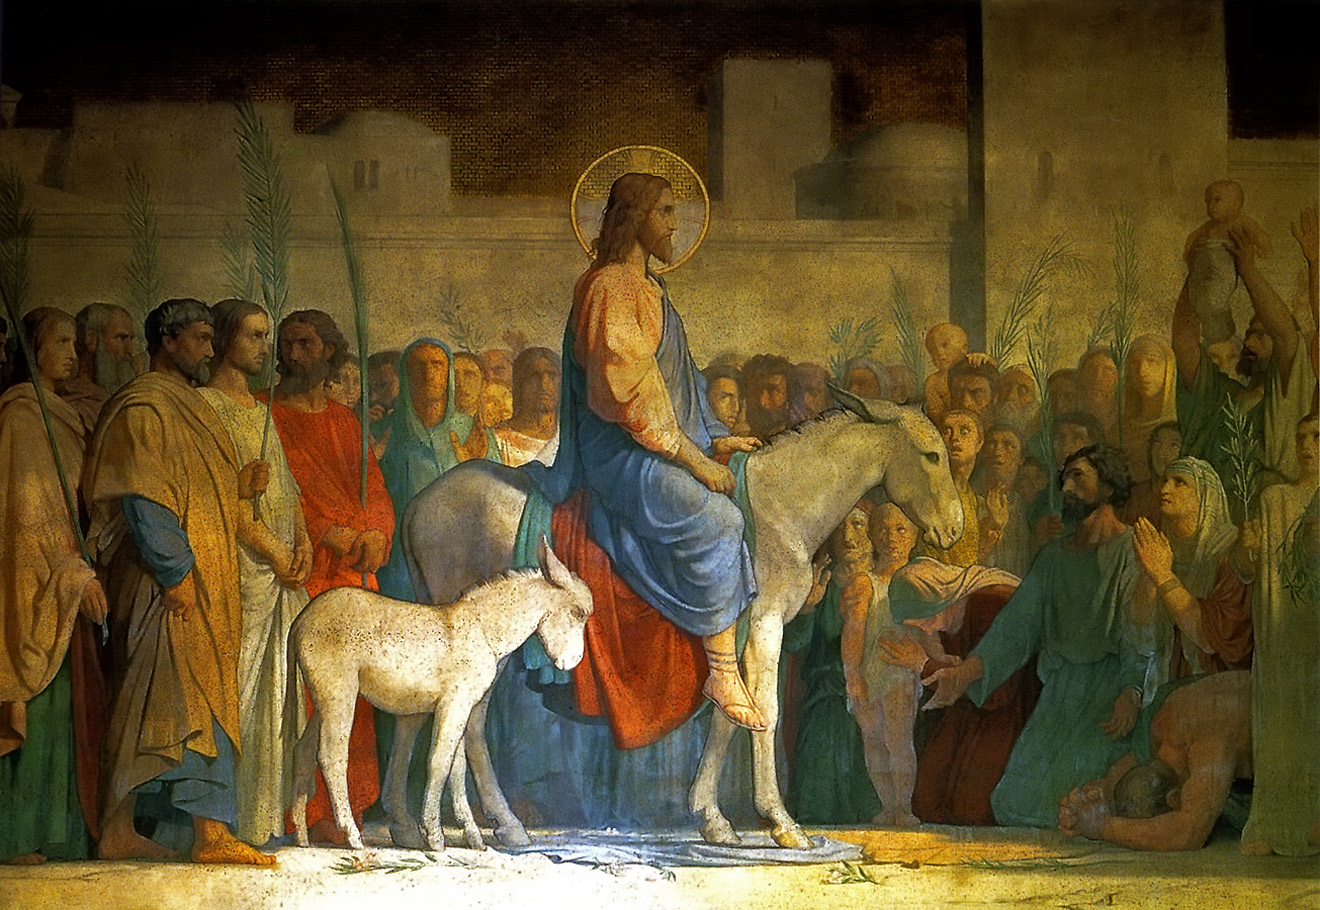 Image of Jesus riding the donkey